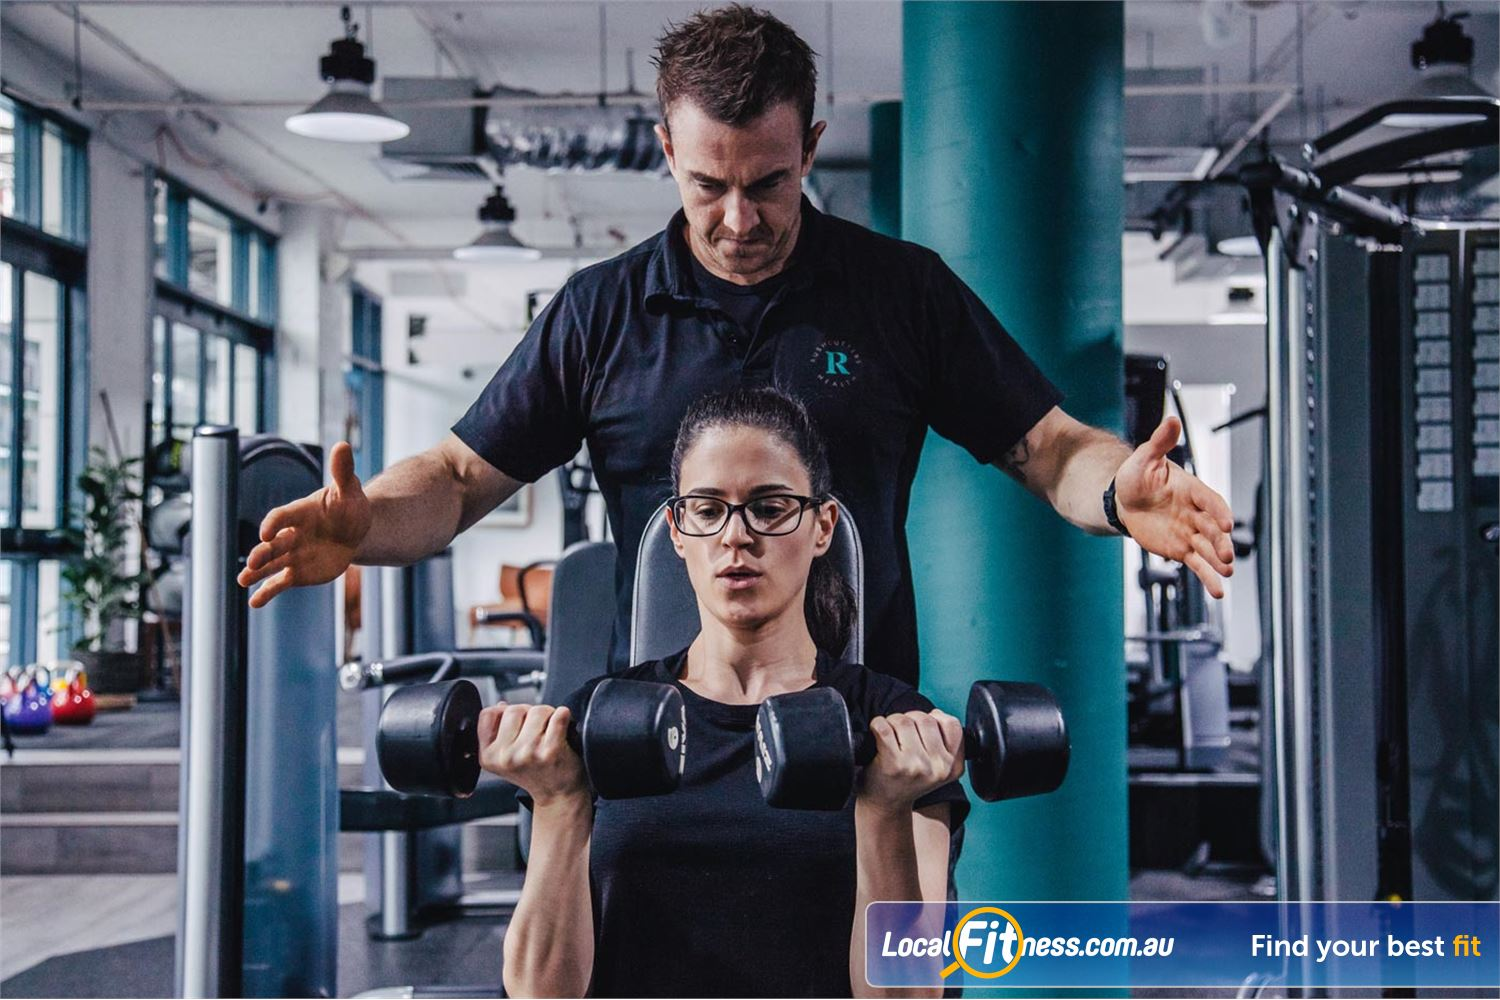 Rushcutters Health Near Woolloomooloo No cookie cutter programs, only personalised personal training programming.